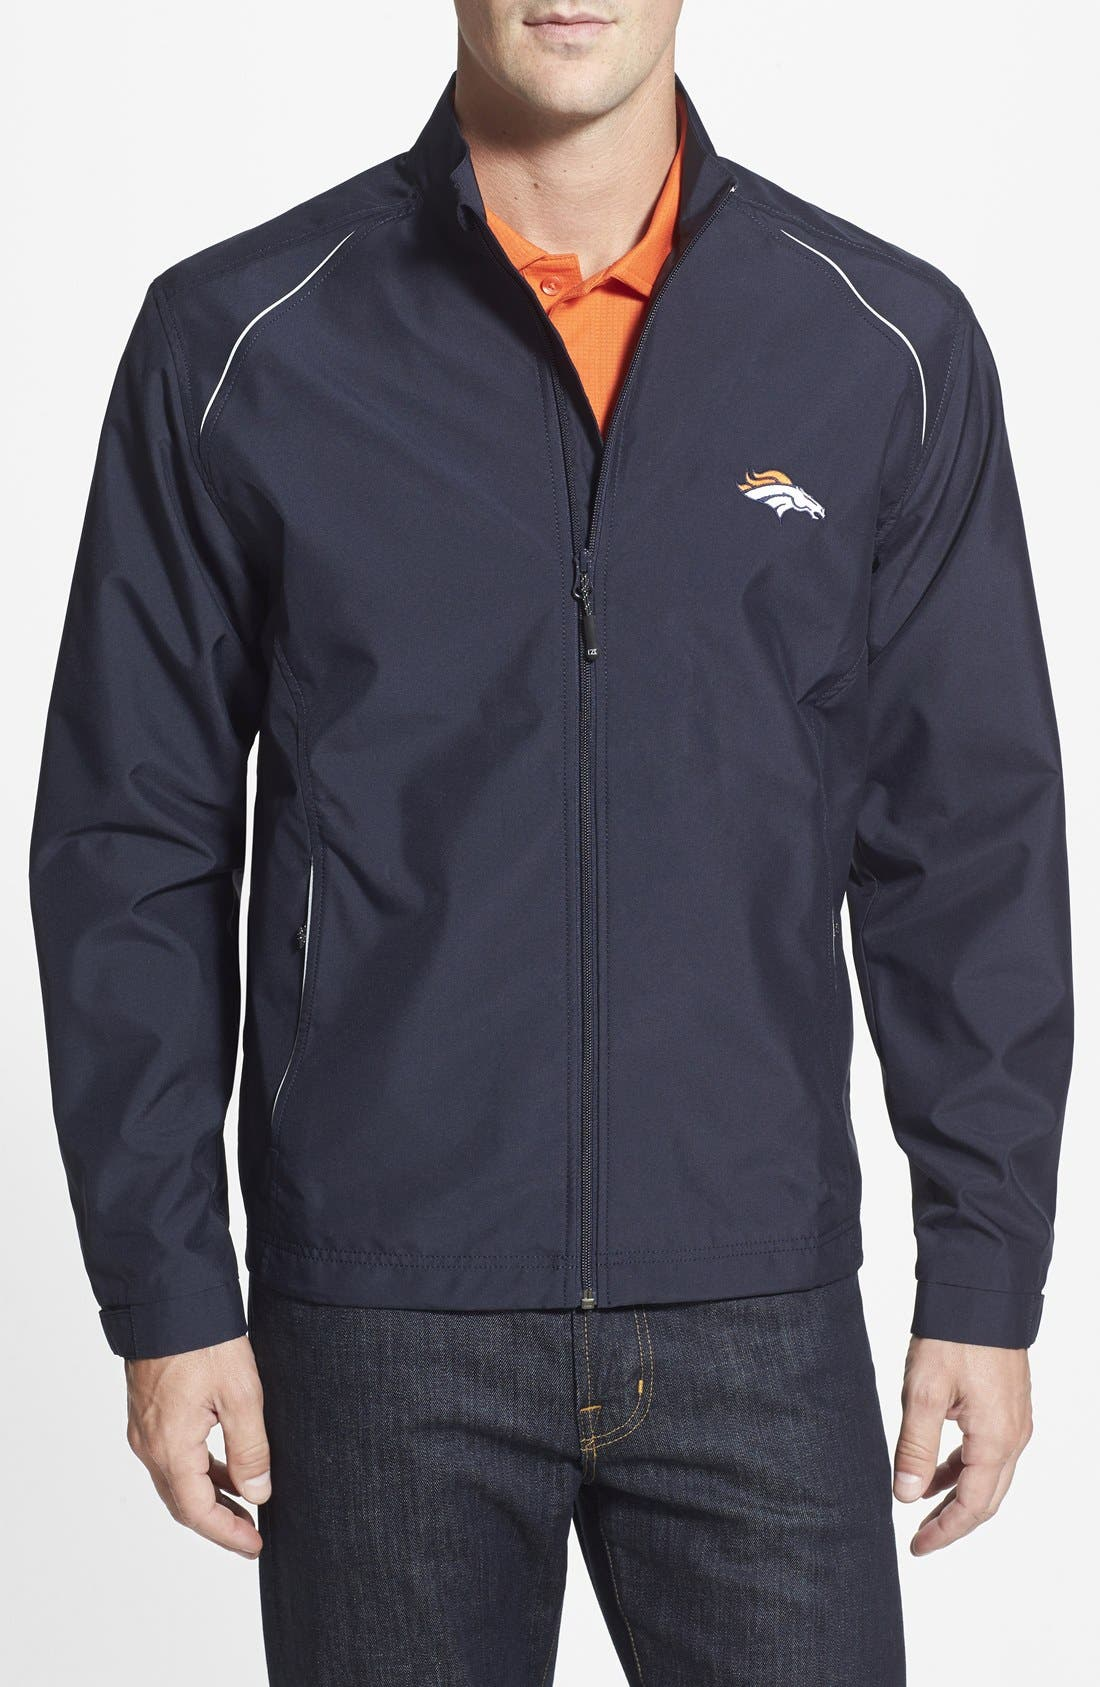 Cutter & Buck 'Denver Broncos - Beacon' WeatherTec Wind & Water Resistant Jacket (Big & Tall)